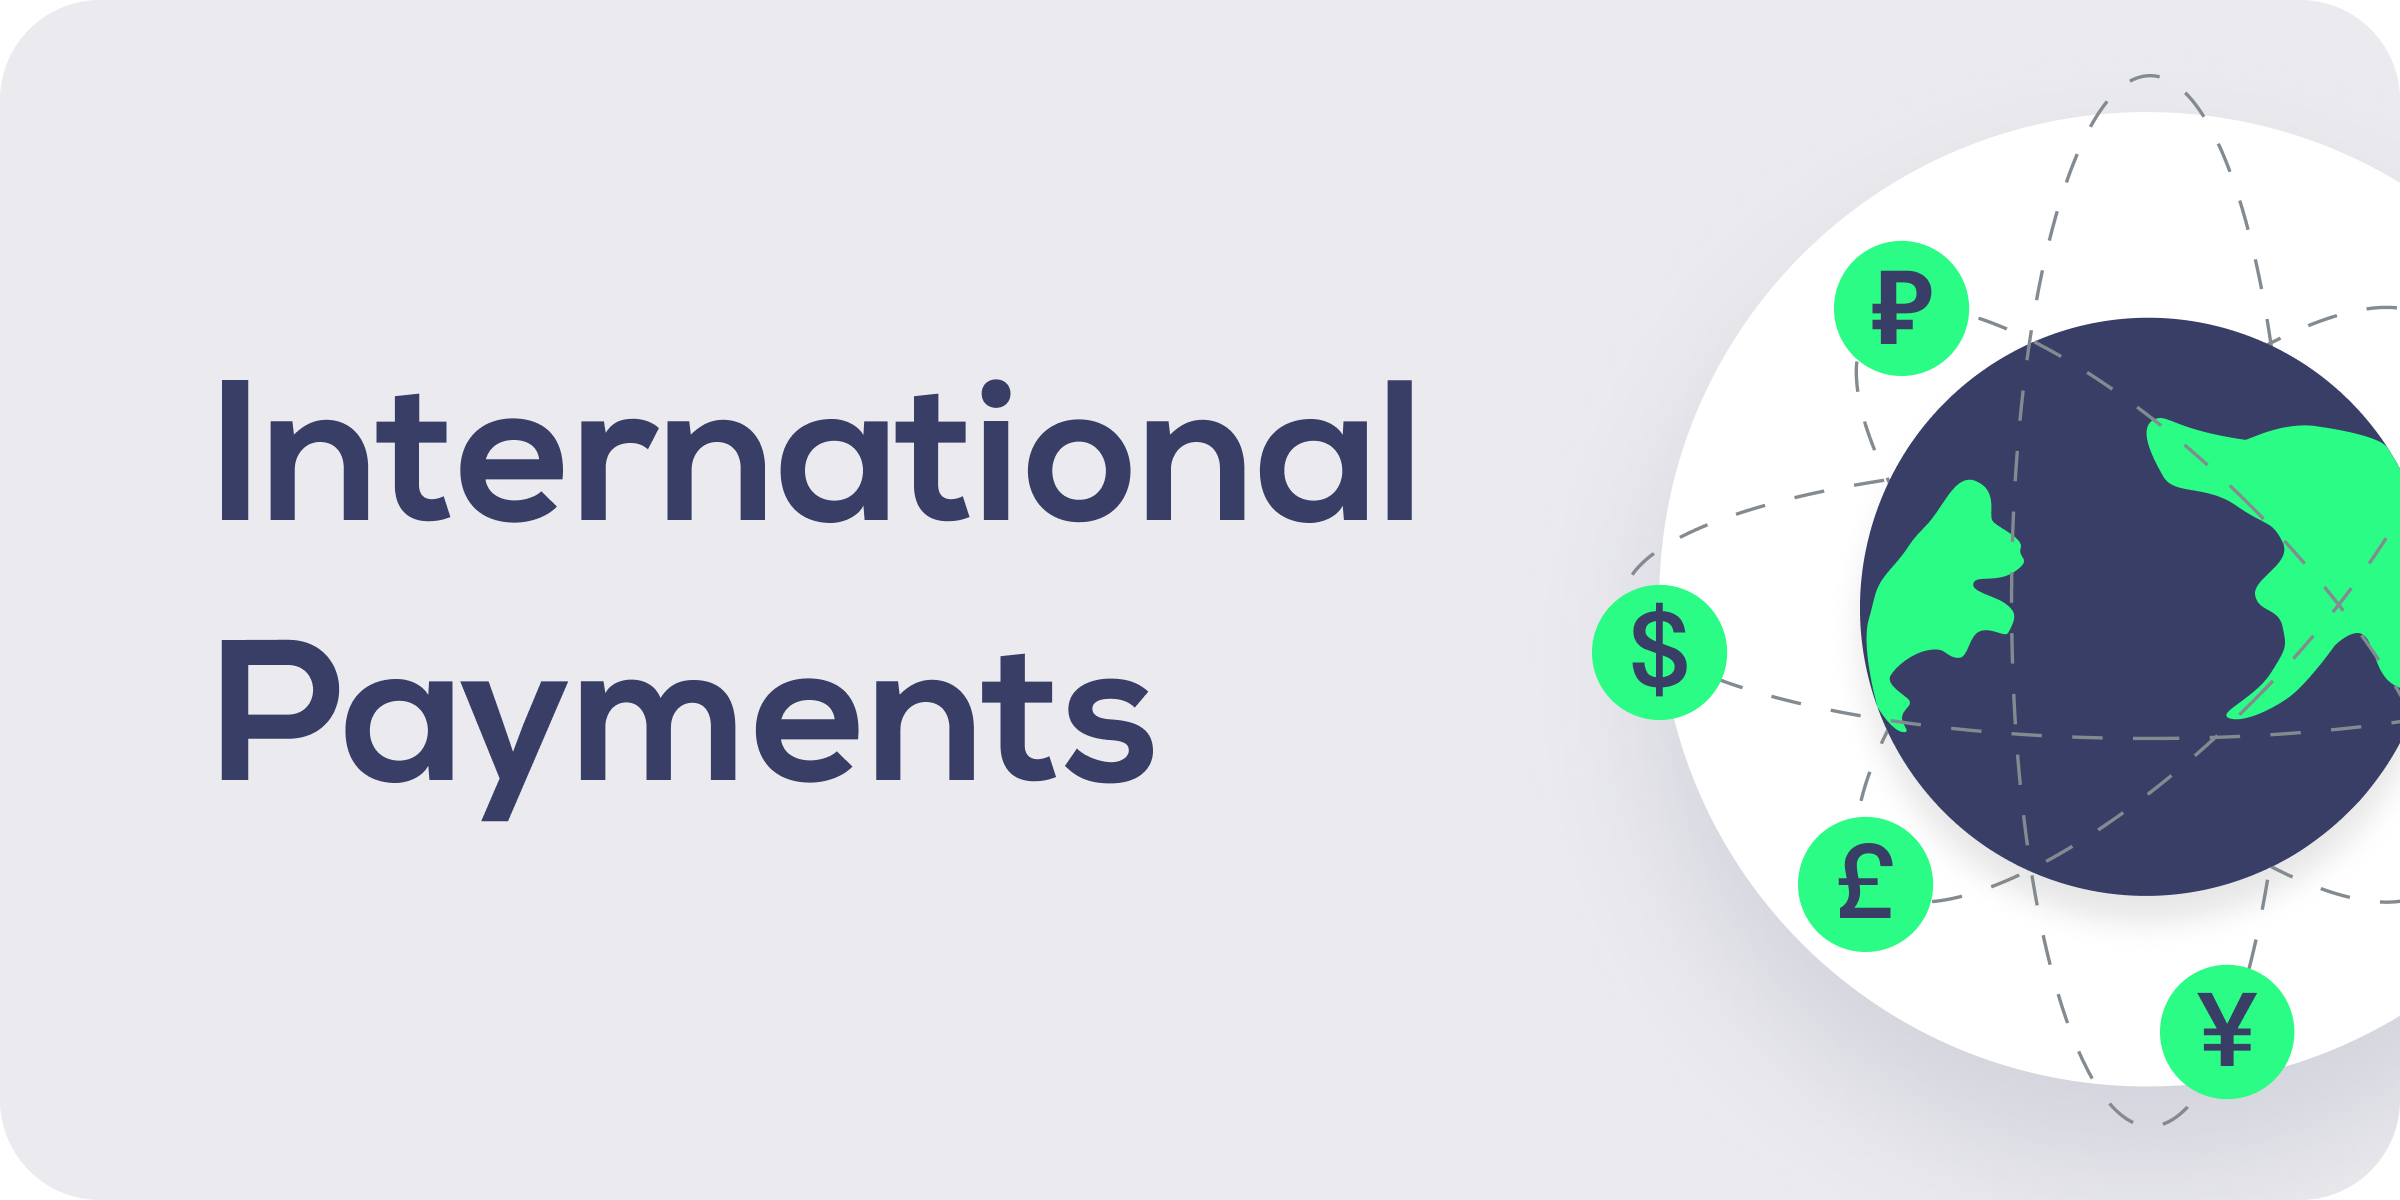 International Payments|International payments with Penta|Penta in comparison to other banks|